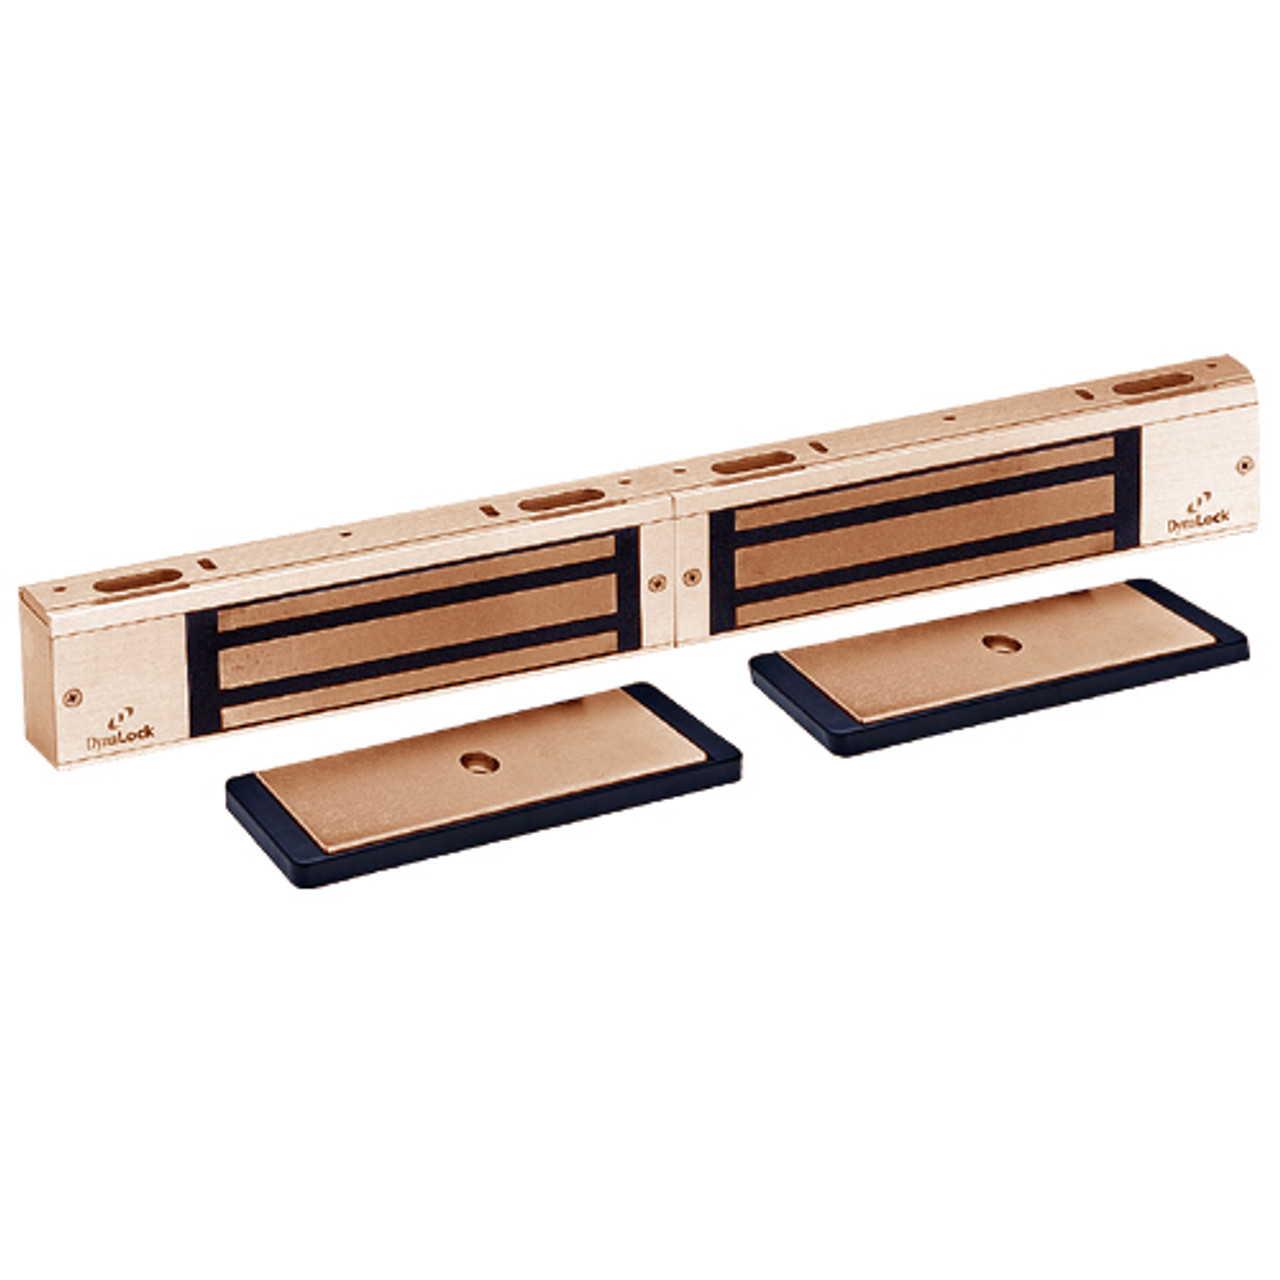 3002-US10-DSM2 DynaLock 3000 Series 1500 LBs Double Electromagnetic Lock for Outswing Door with DSM in Satin Bronze